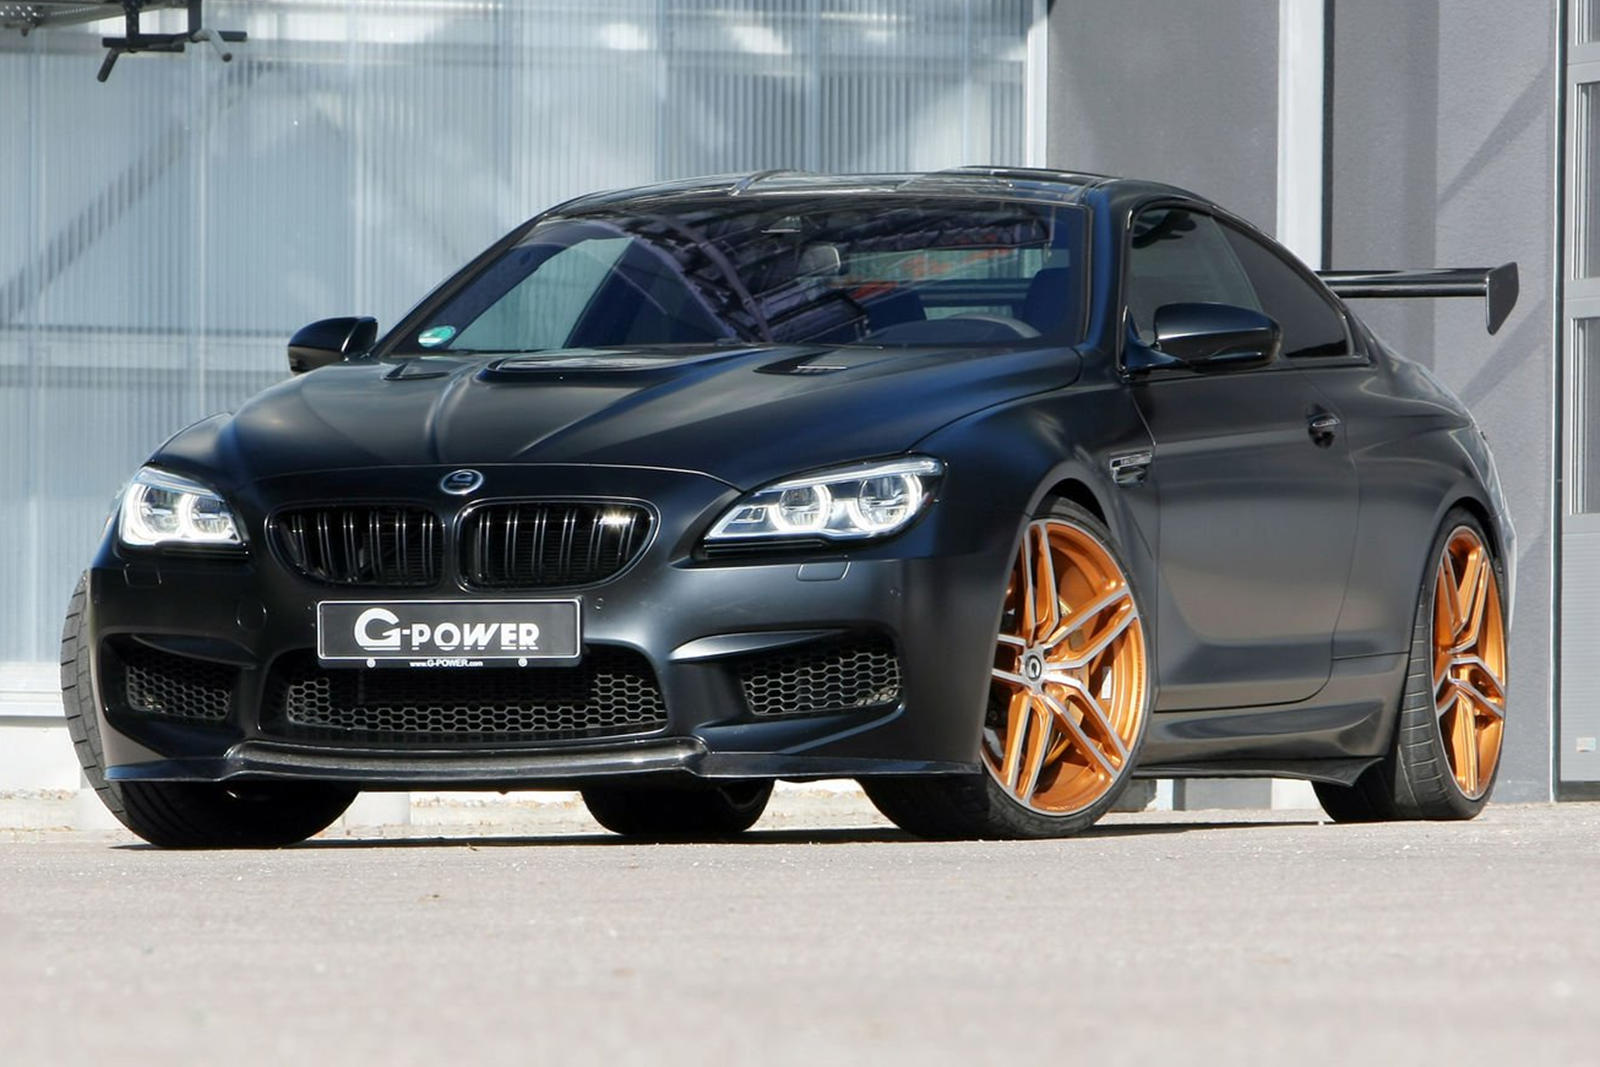 Bmw M6 Coupe Turned Into 800 Hp Supercar Carbuzz